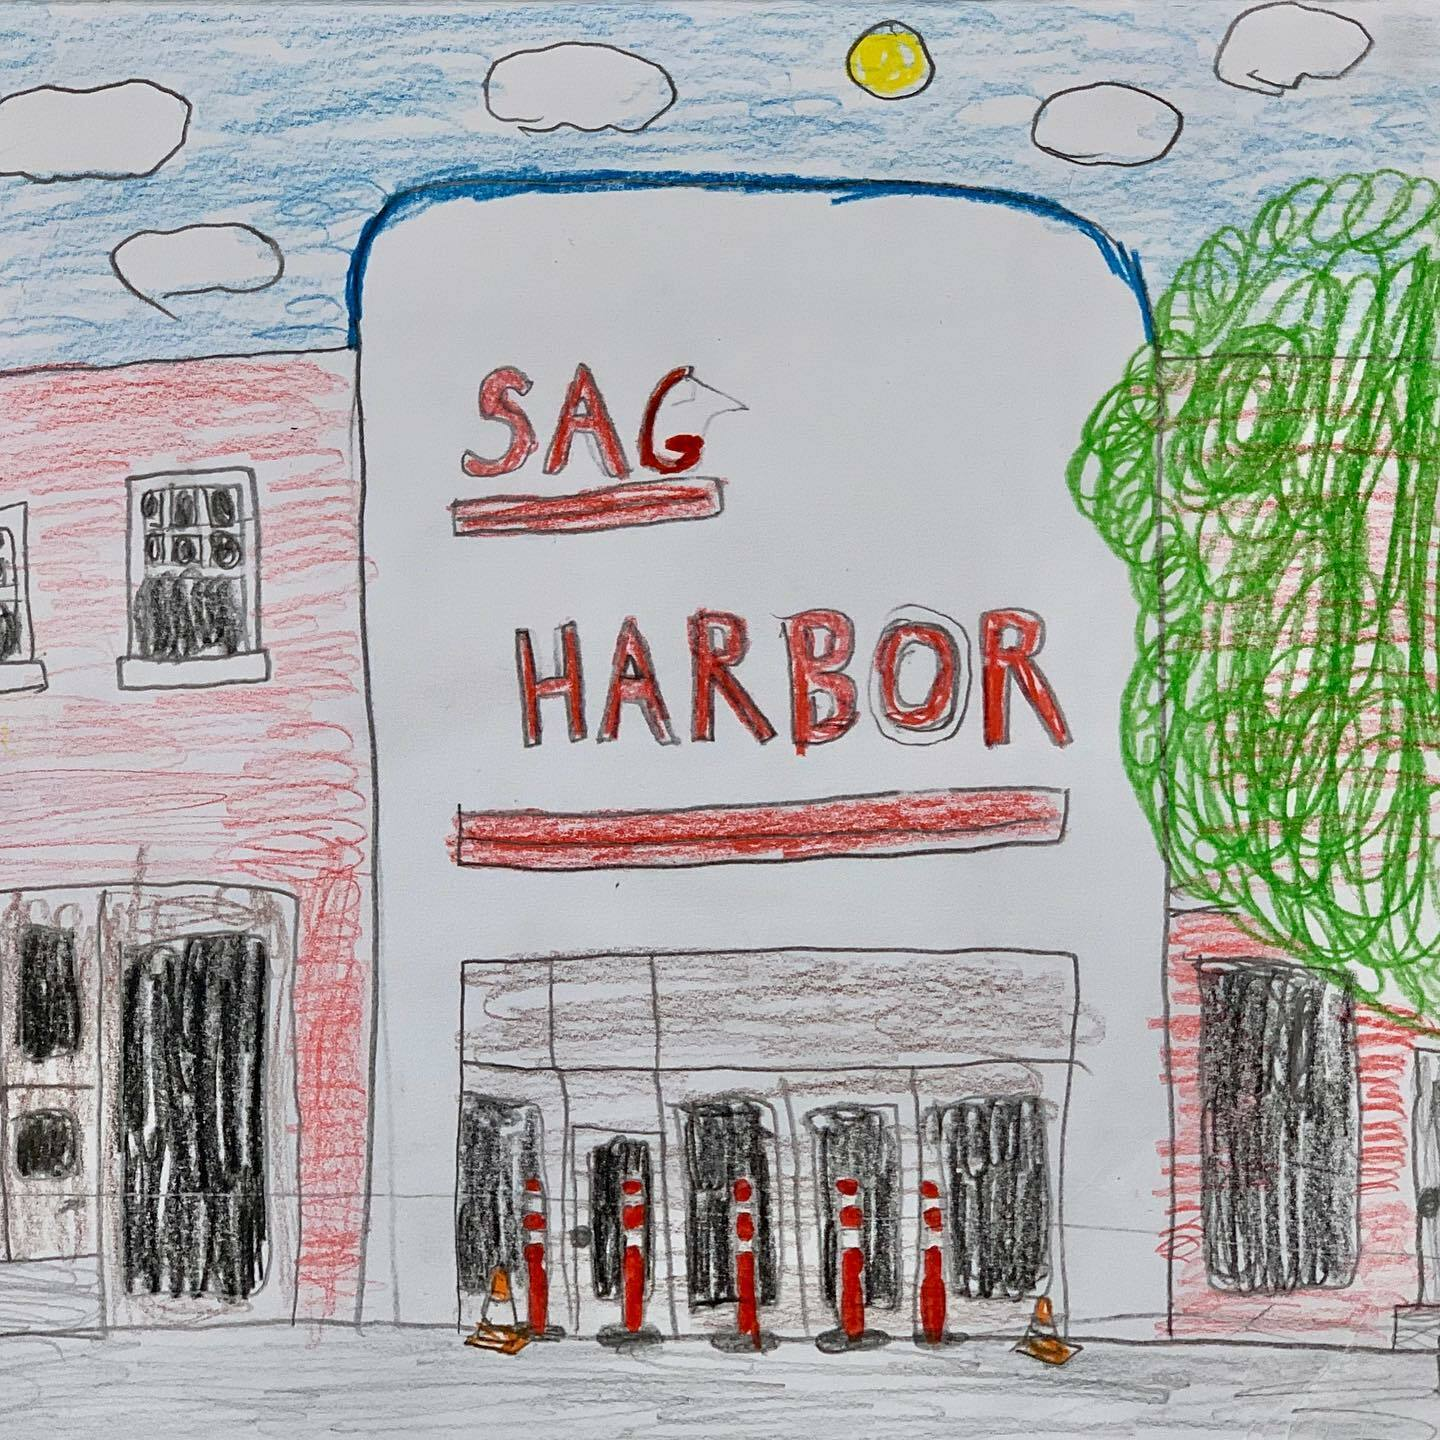 The Sag Harbor Cinema by Viggo Negroponte.